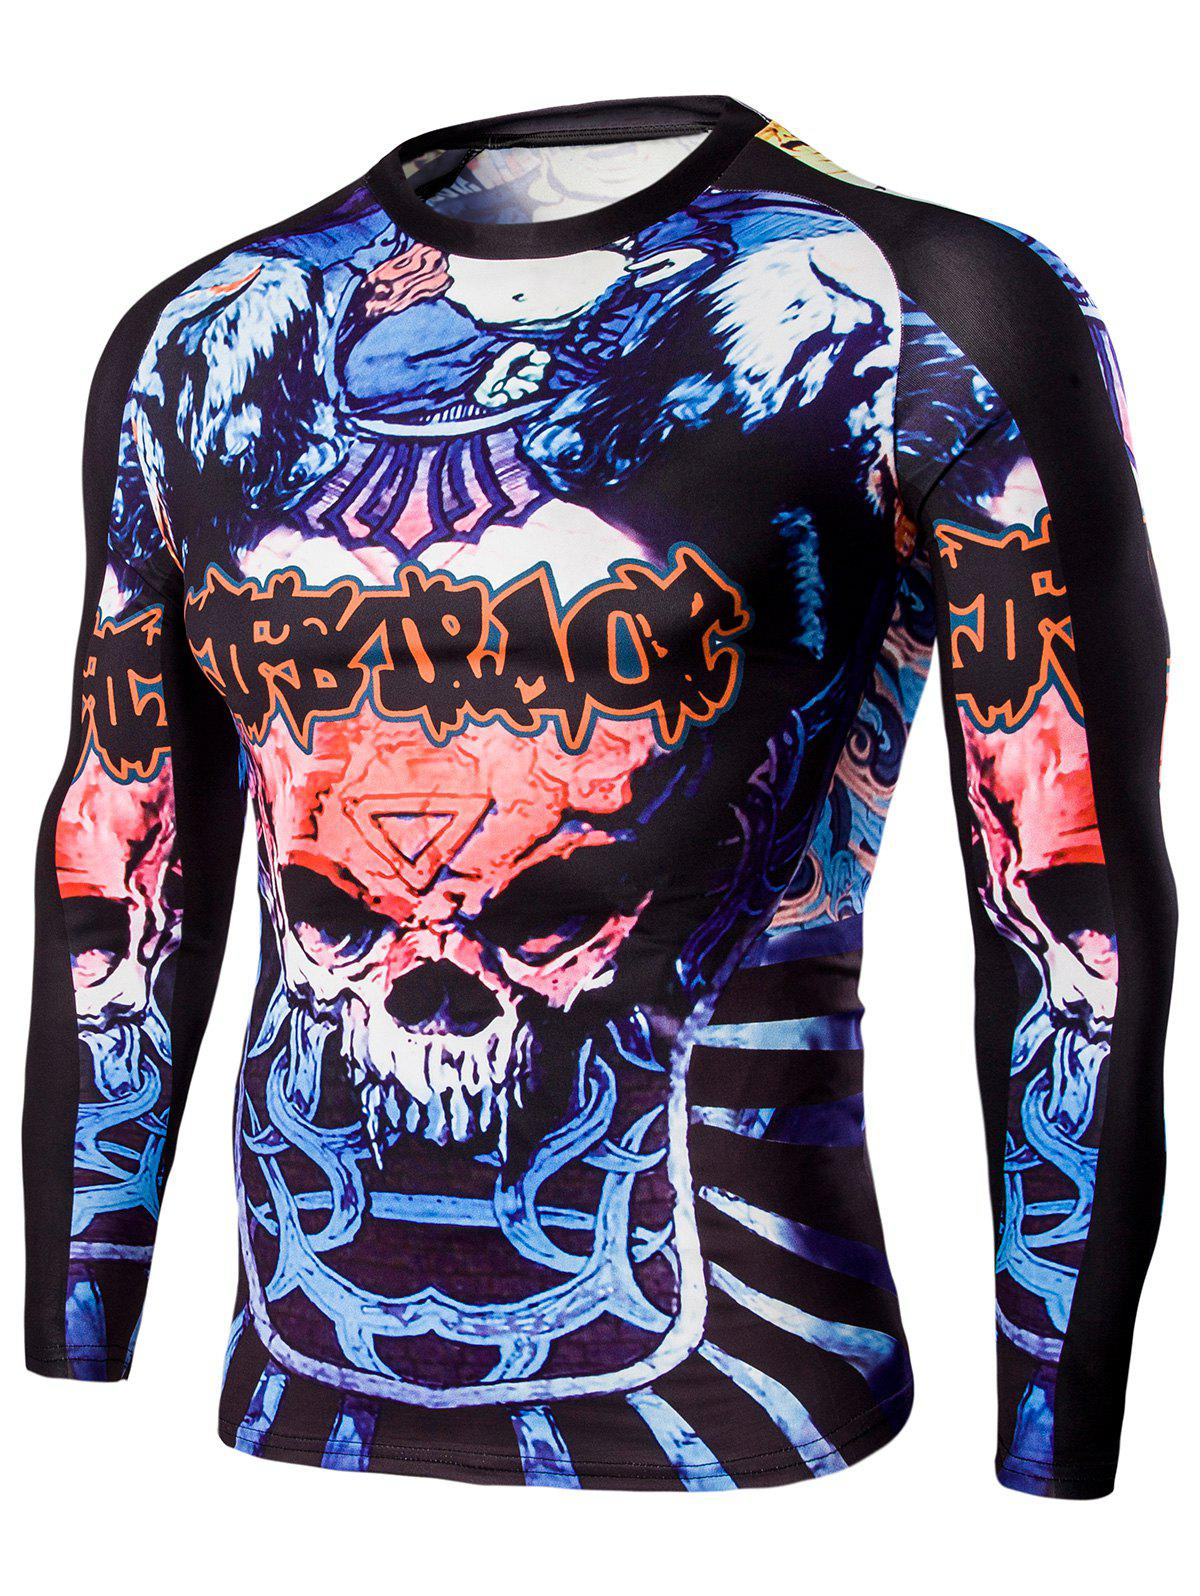 Men's Round Neck Skull and Words Print Long Sleeves T-Shirt - COLORMIX L